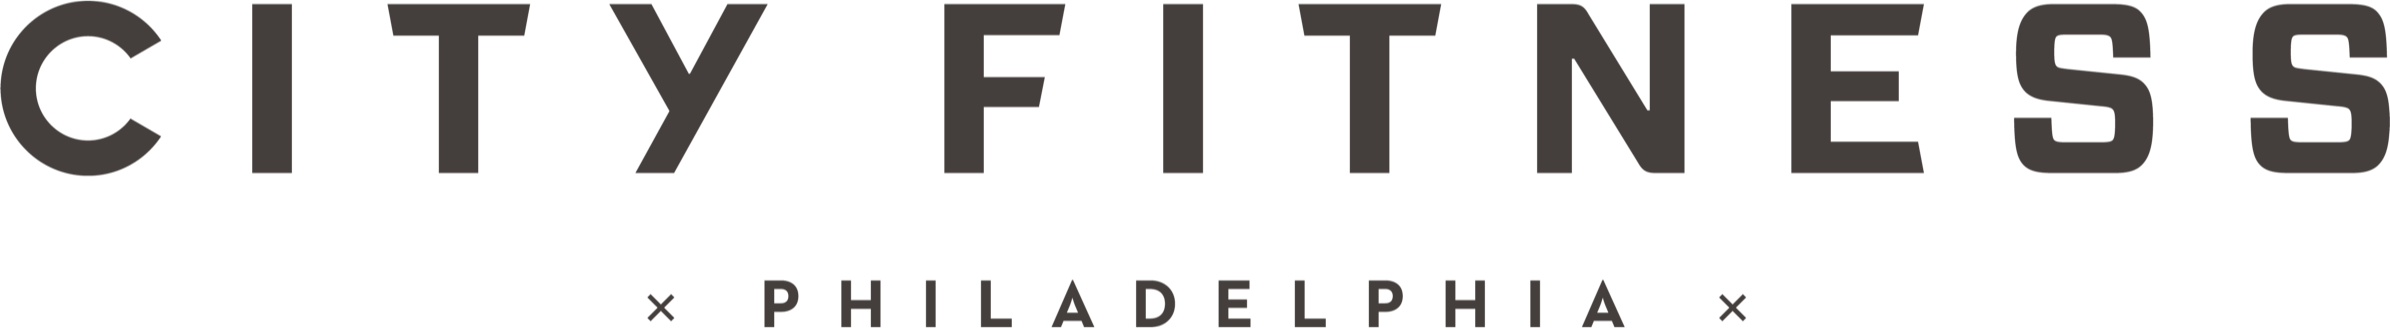 City Fitness Logo